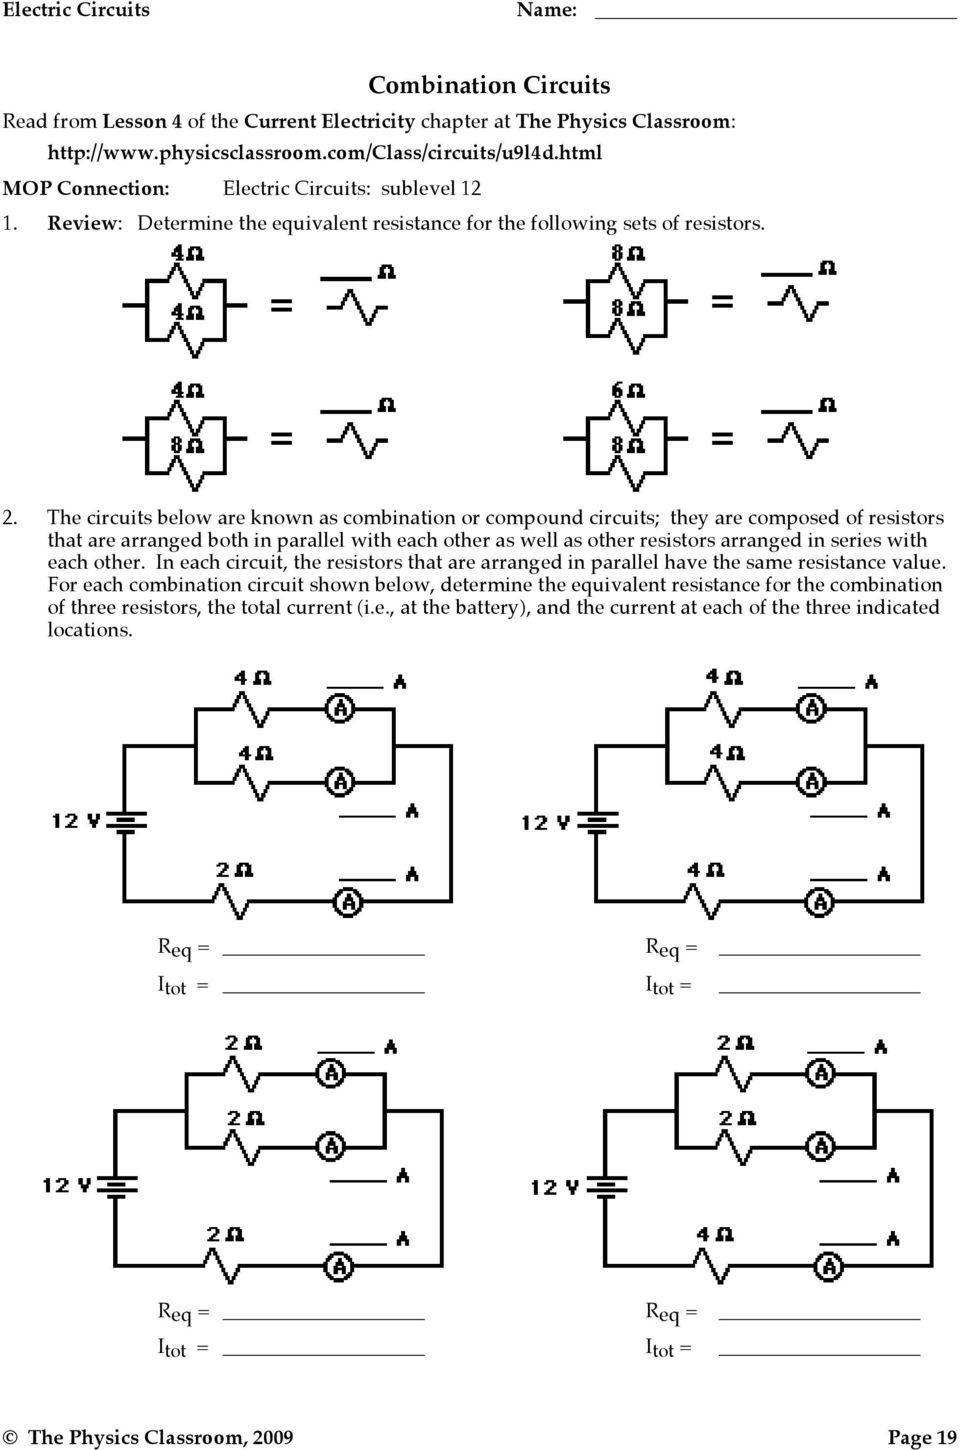 Combination Circuits Worksheet with Answers Bmoretattoo Page 16 Writing Practice Worksheets solids